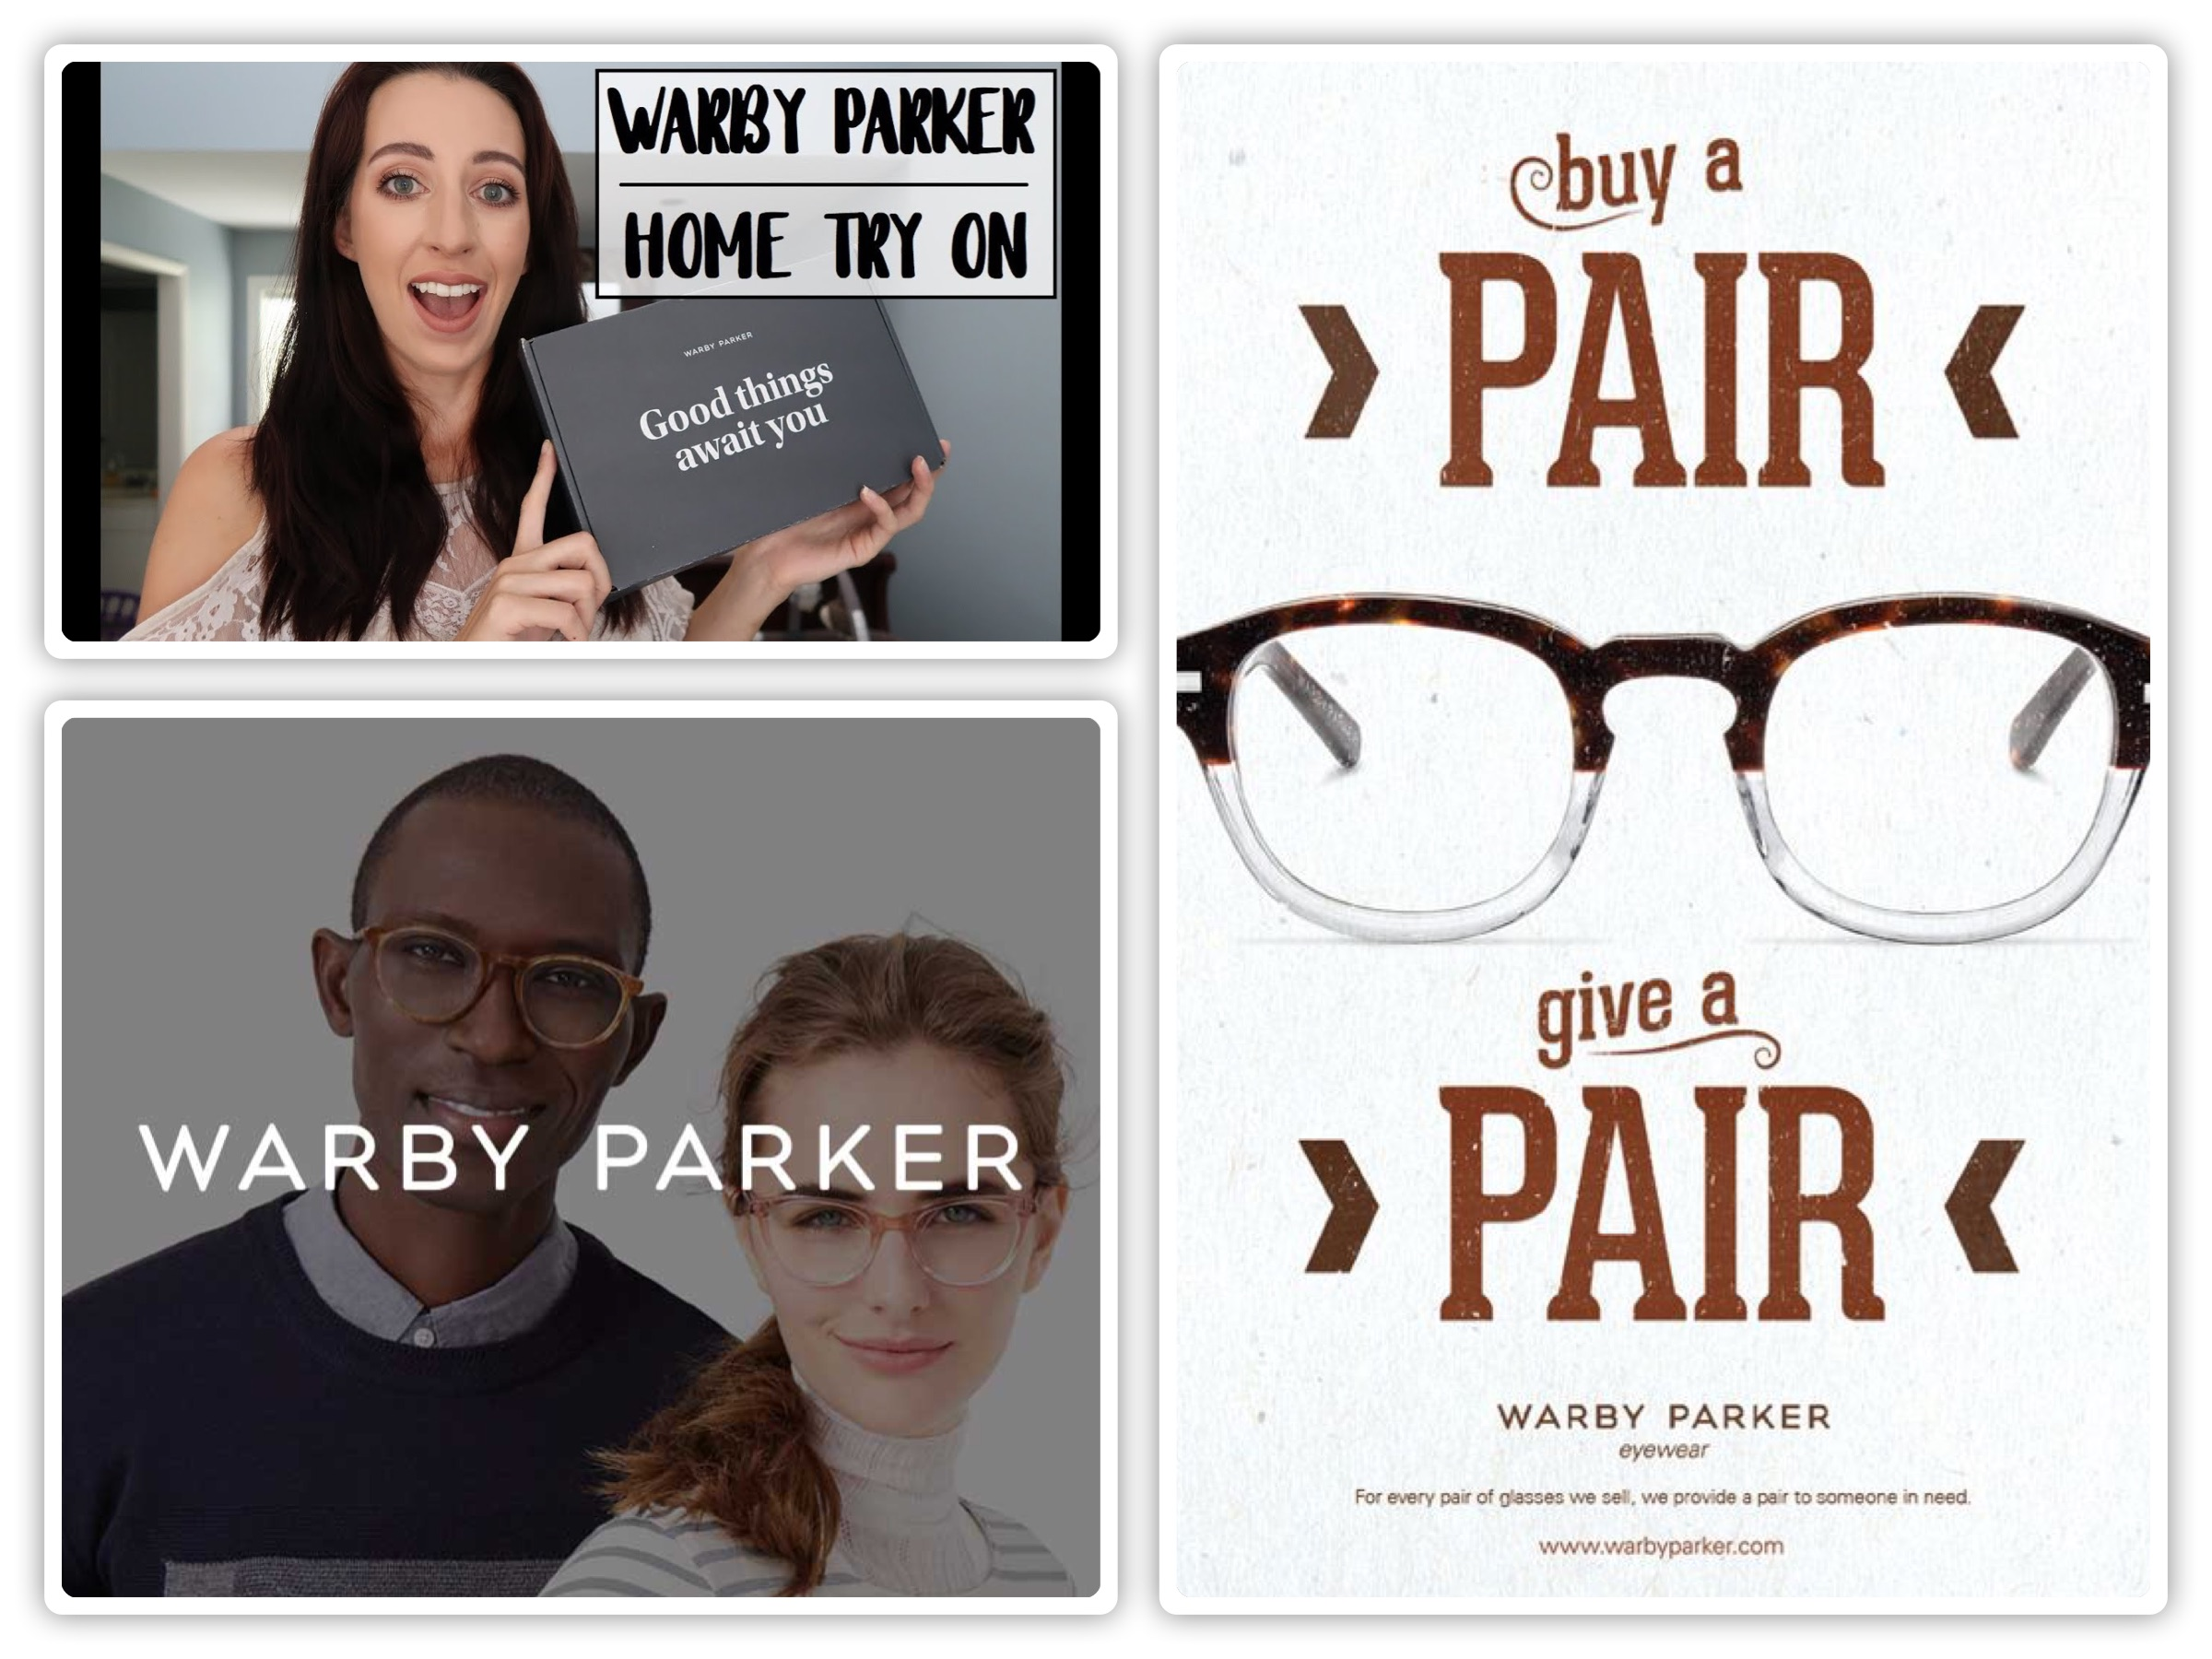 b203fbc81c2 ... on to the disconnect between what we say about the importance of brand  social responsibility and what actually motivates us to buy. Warby Parker is  ...